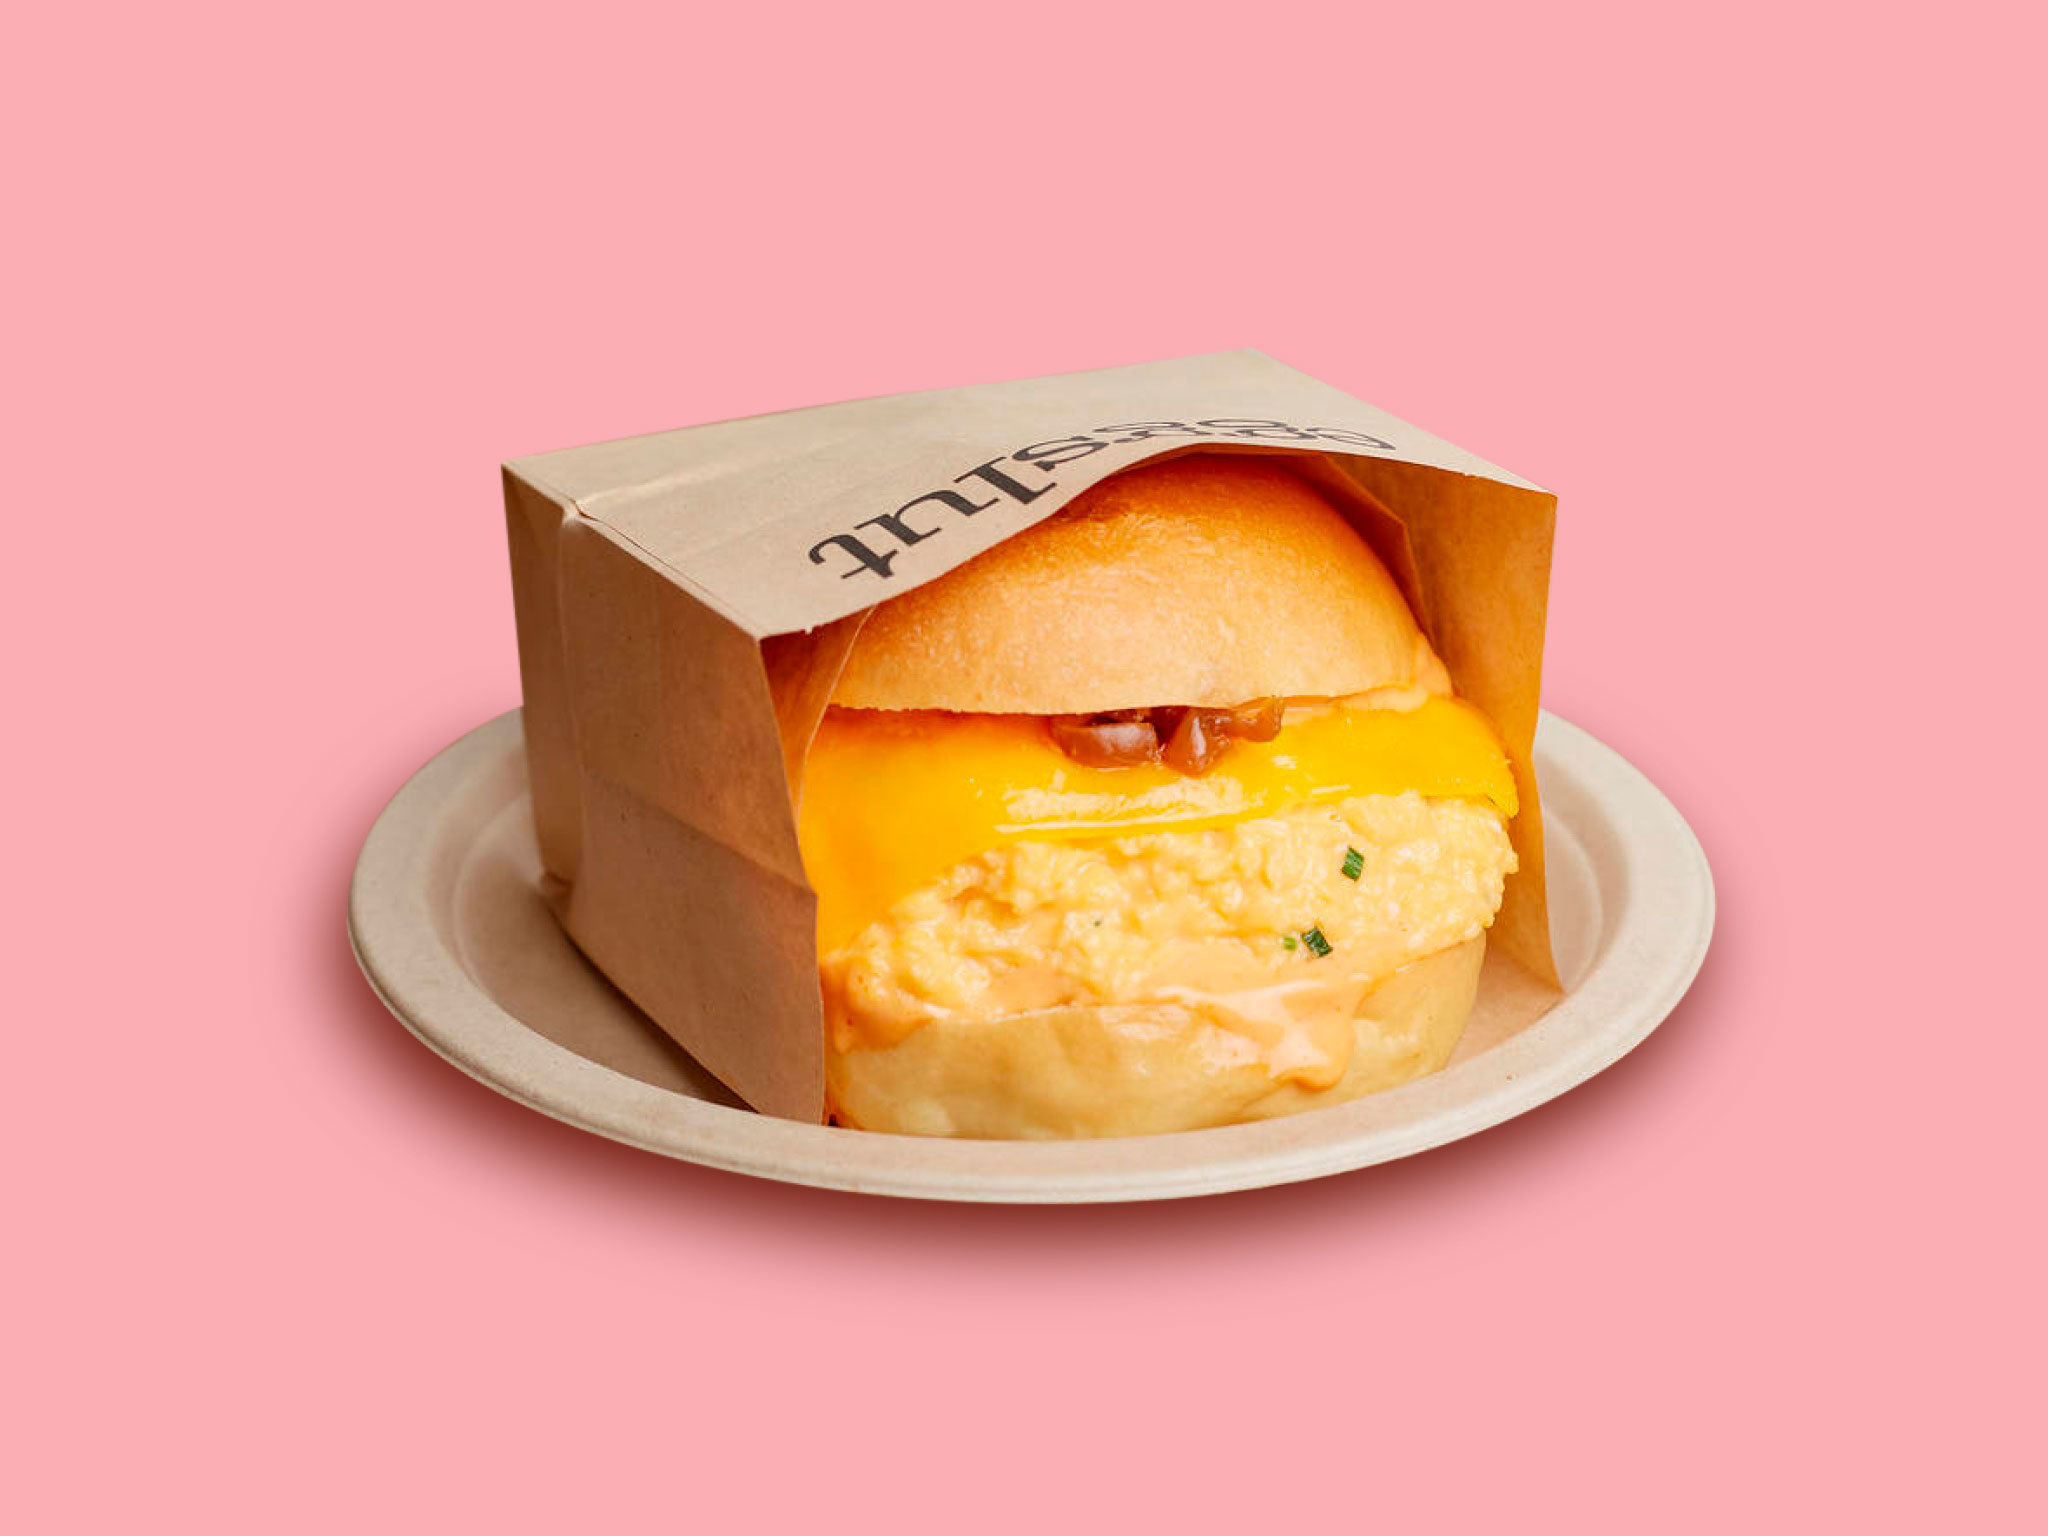 How to make Eggslut's Fairfax egg sandwich